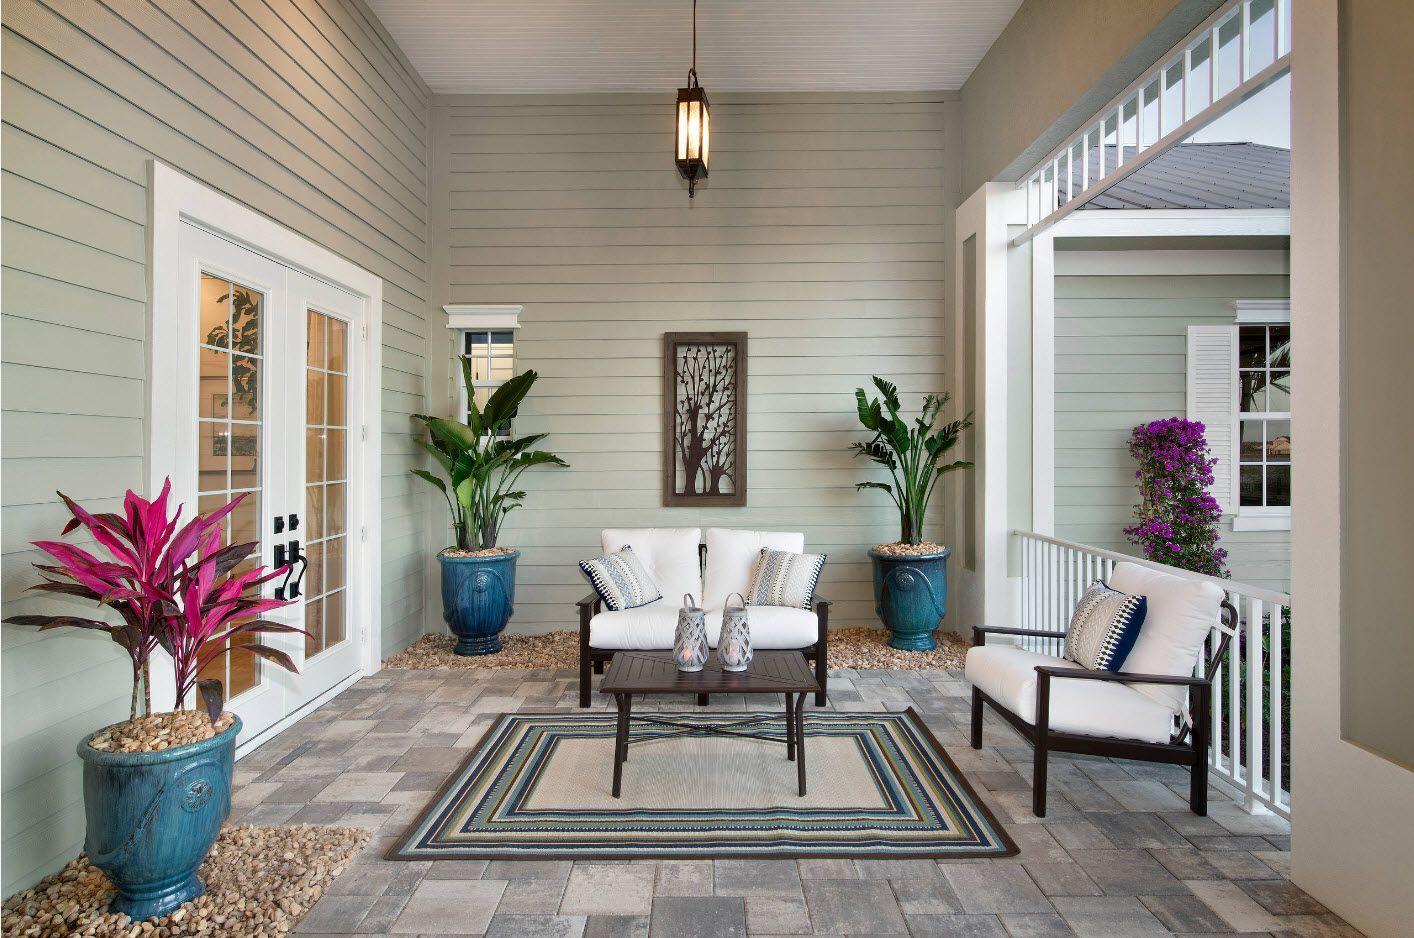 Country House Porch Decoration & Design Ideas. Almost fully closed area